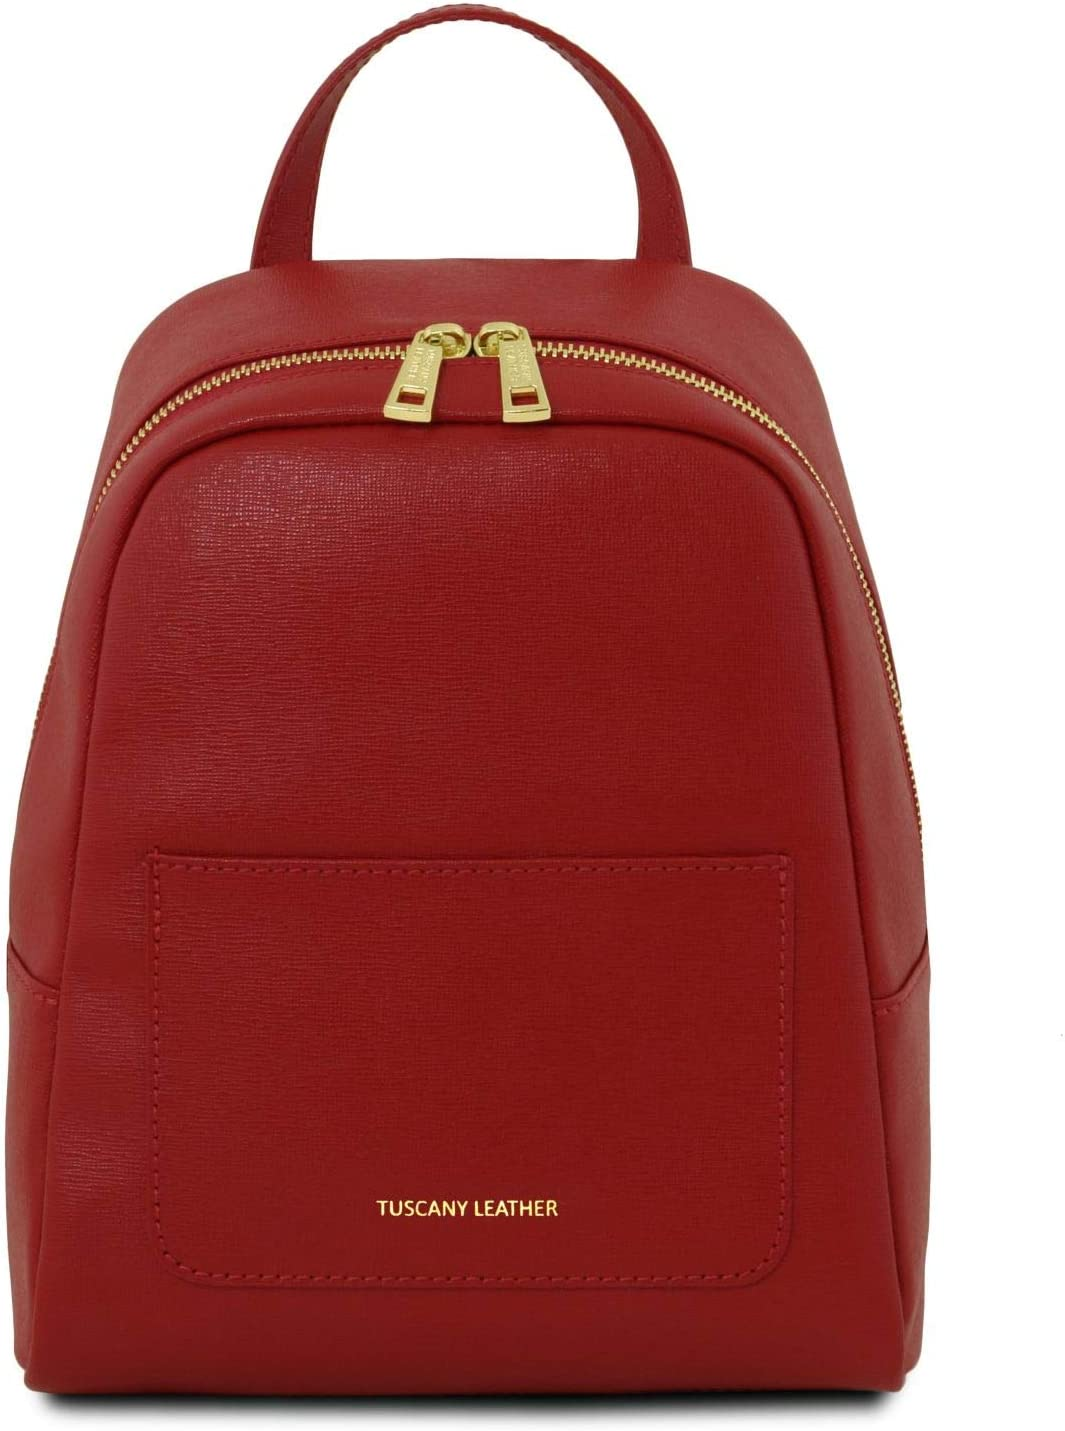 Red TL141701 Tuscany Leather TL Bag Small Saffiano leather backpack for woman